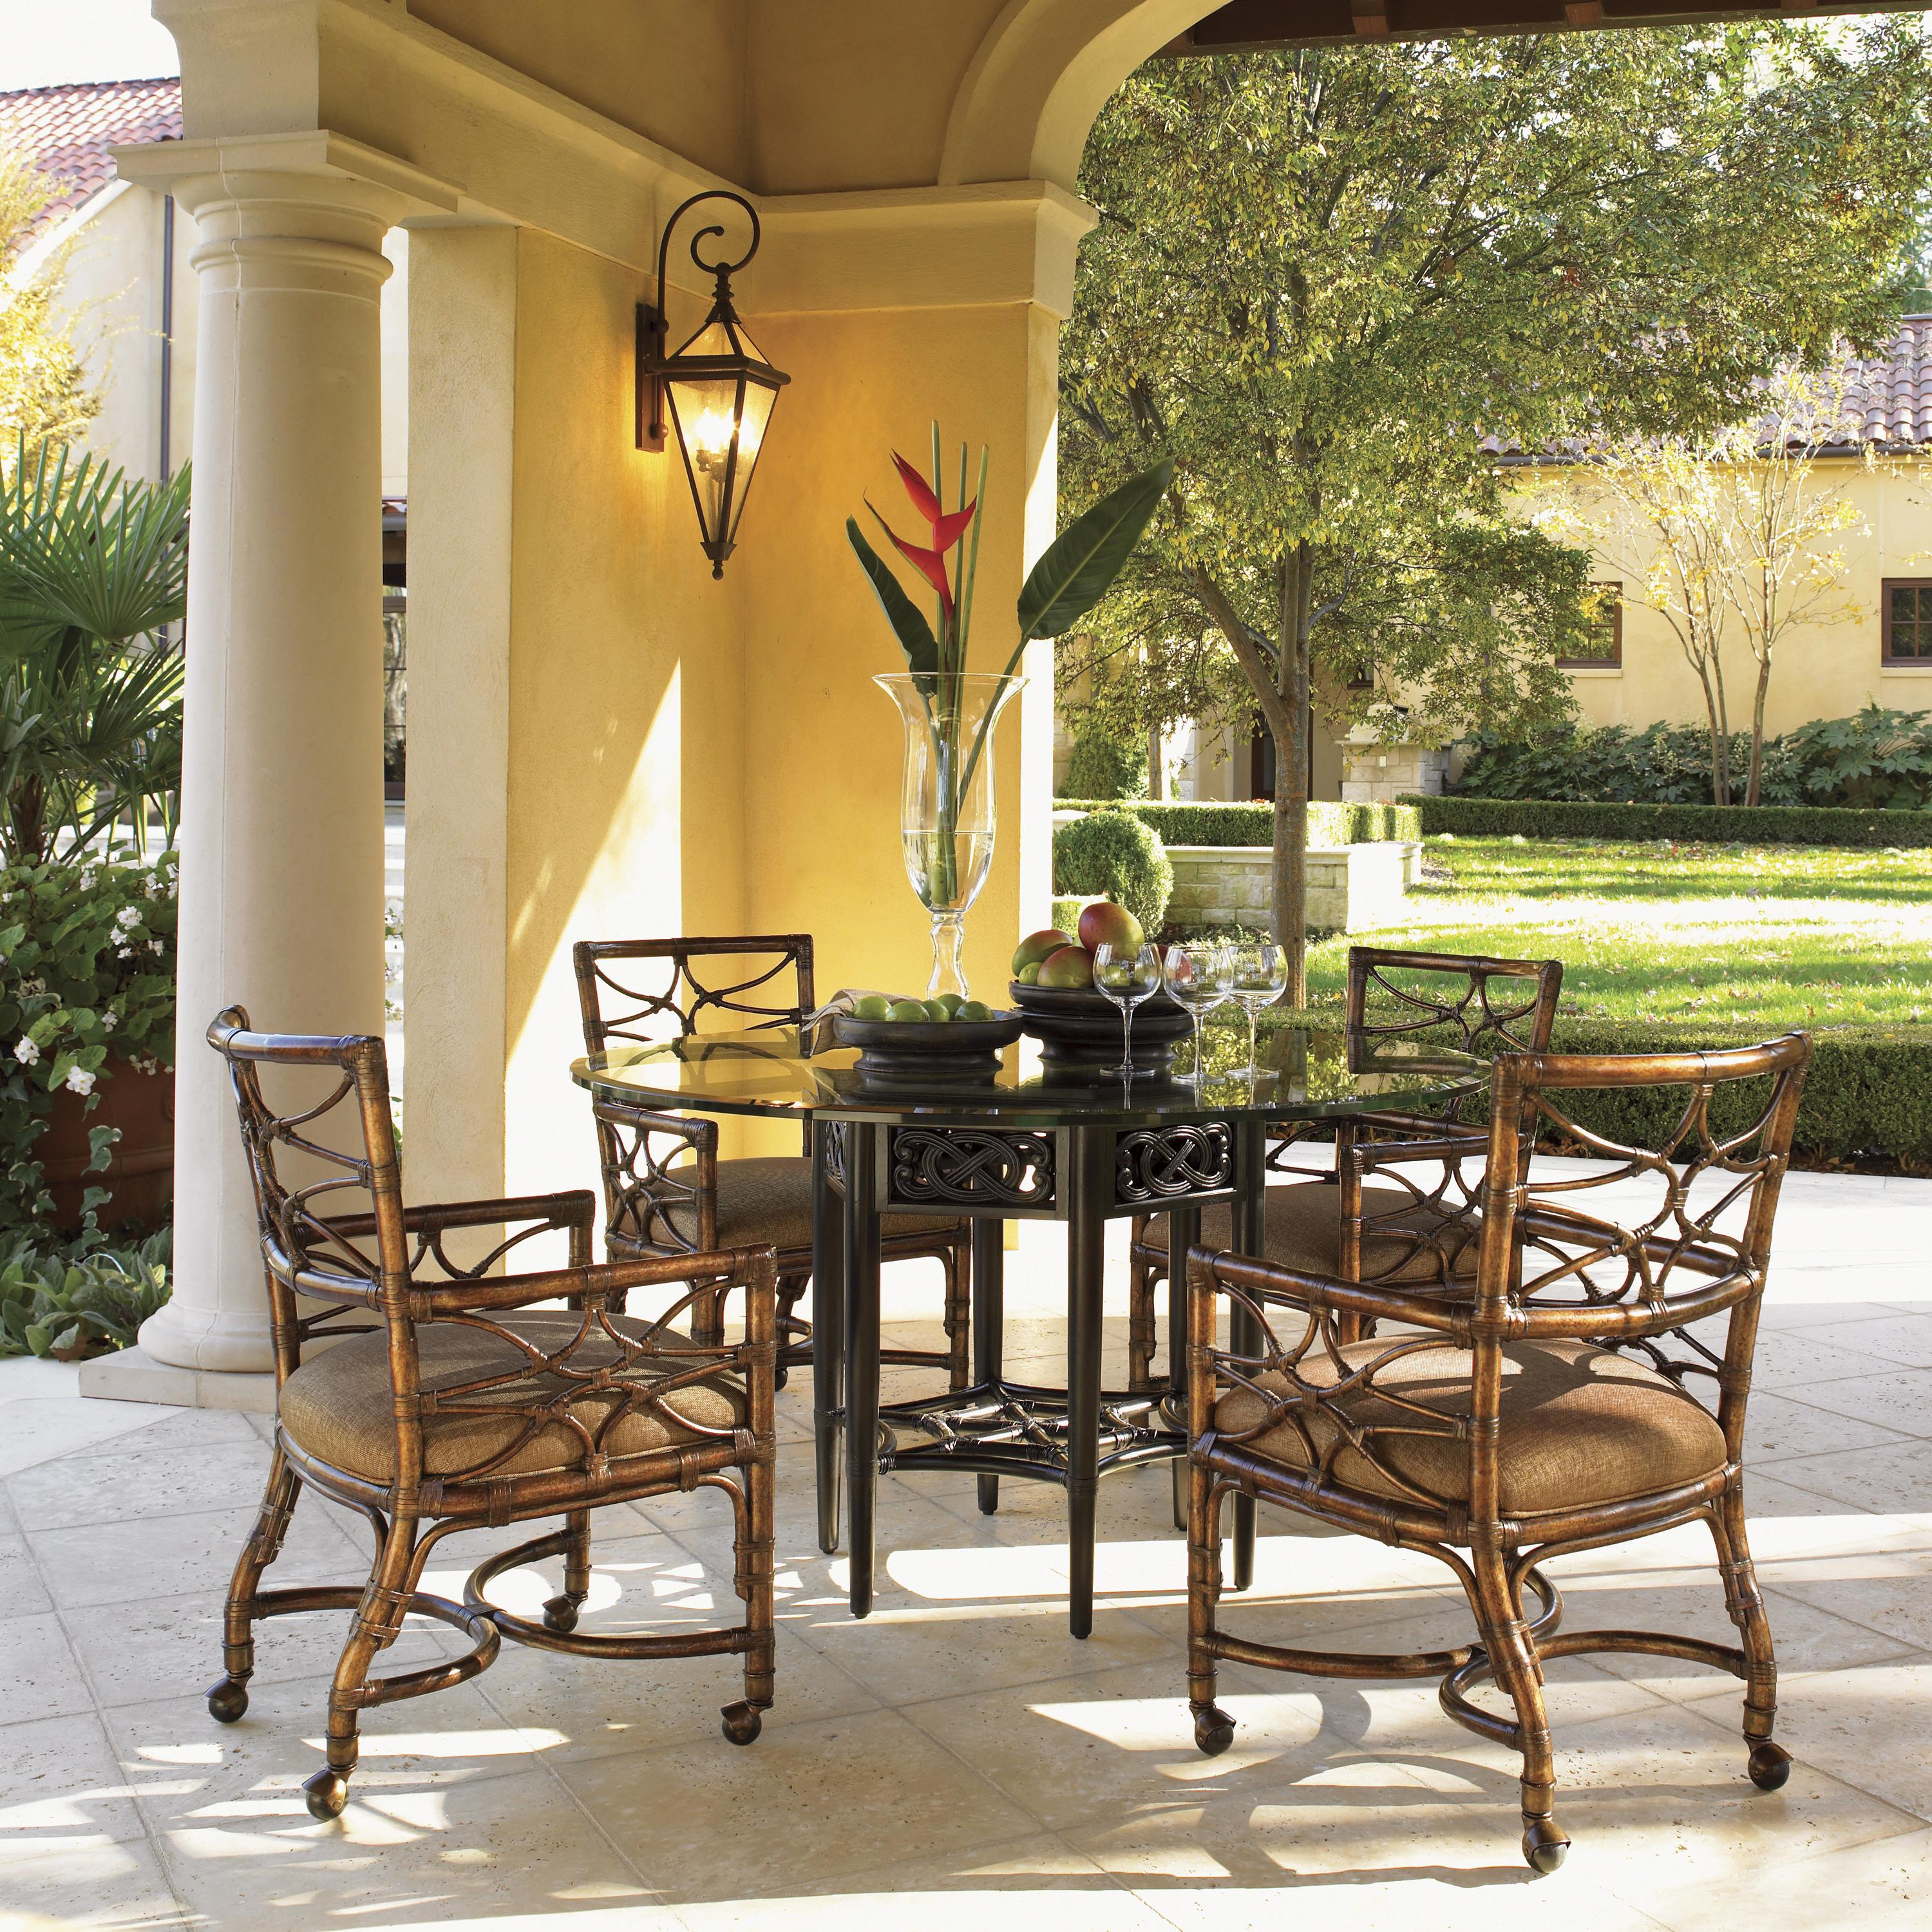 Tommy Bahama Dining Room Furniture: Collections%2Ftommy_bahama_home%2Ftommy%20bahama%20home